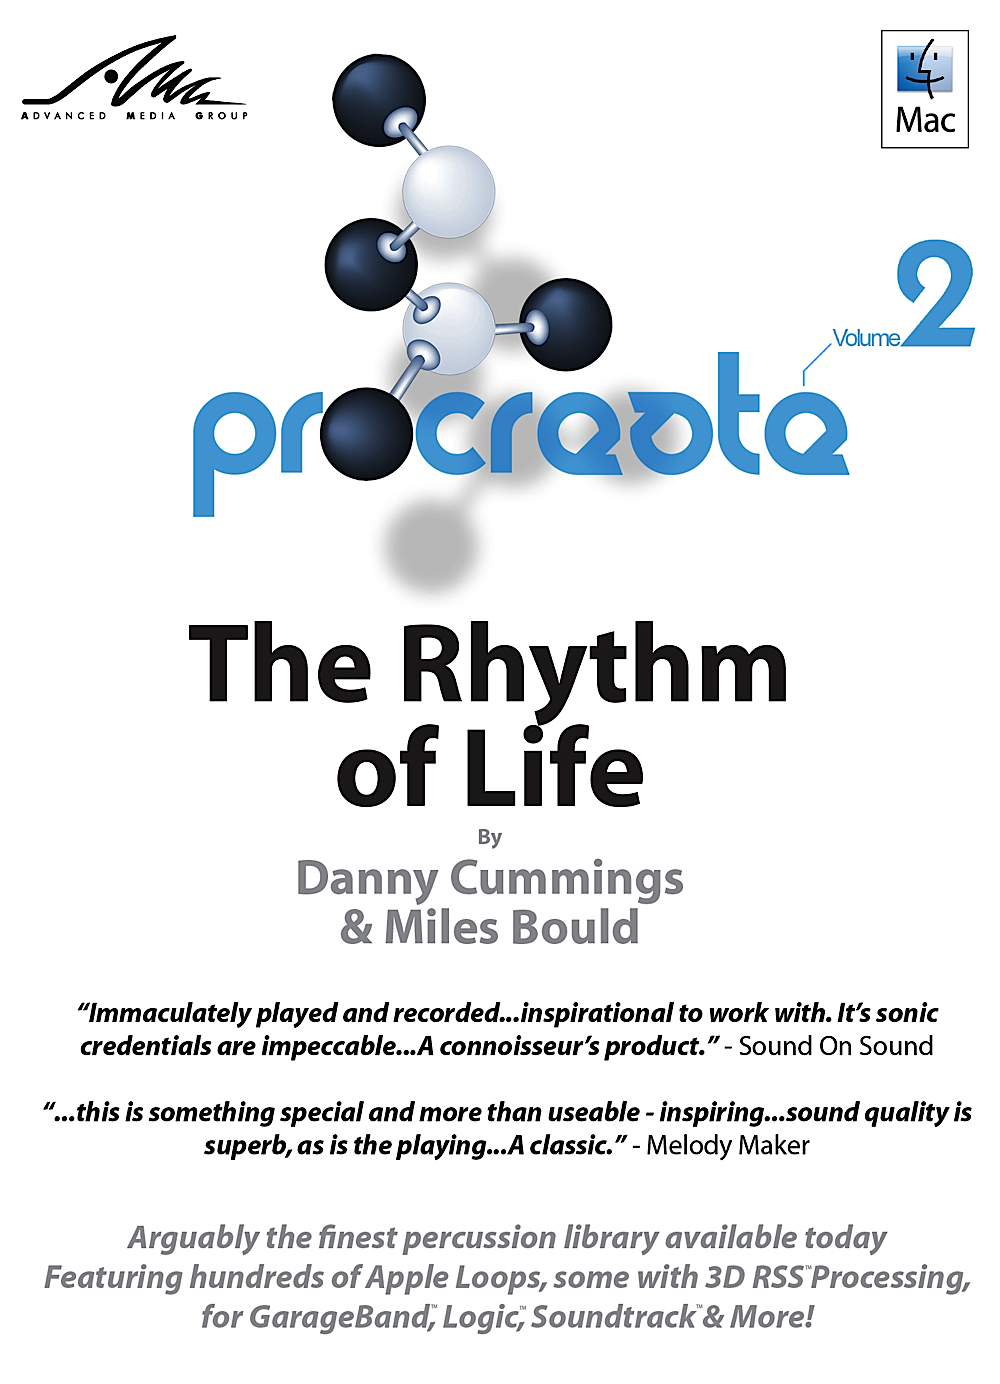 rhythm-of-life-cummings-bould-high-quality-percussion-apple-loops-online-code